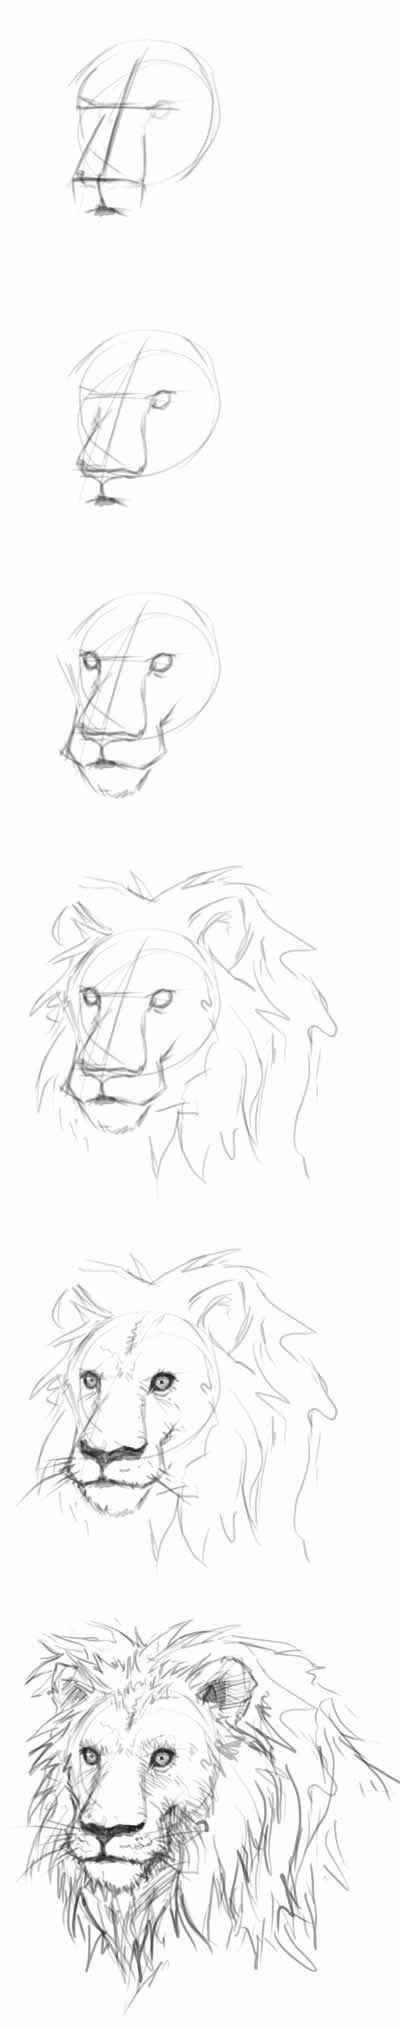 How To Draw A Lion Head Step By Step #drawingtutorial: